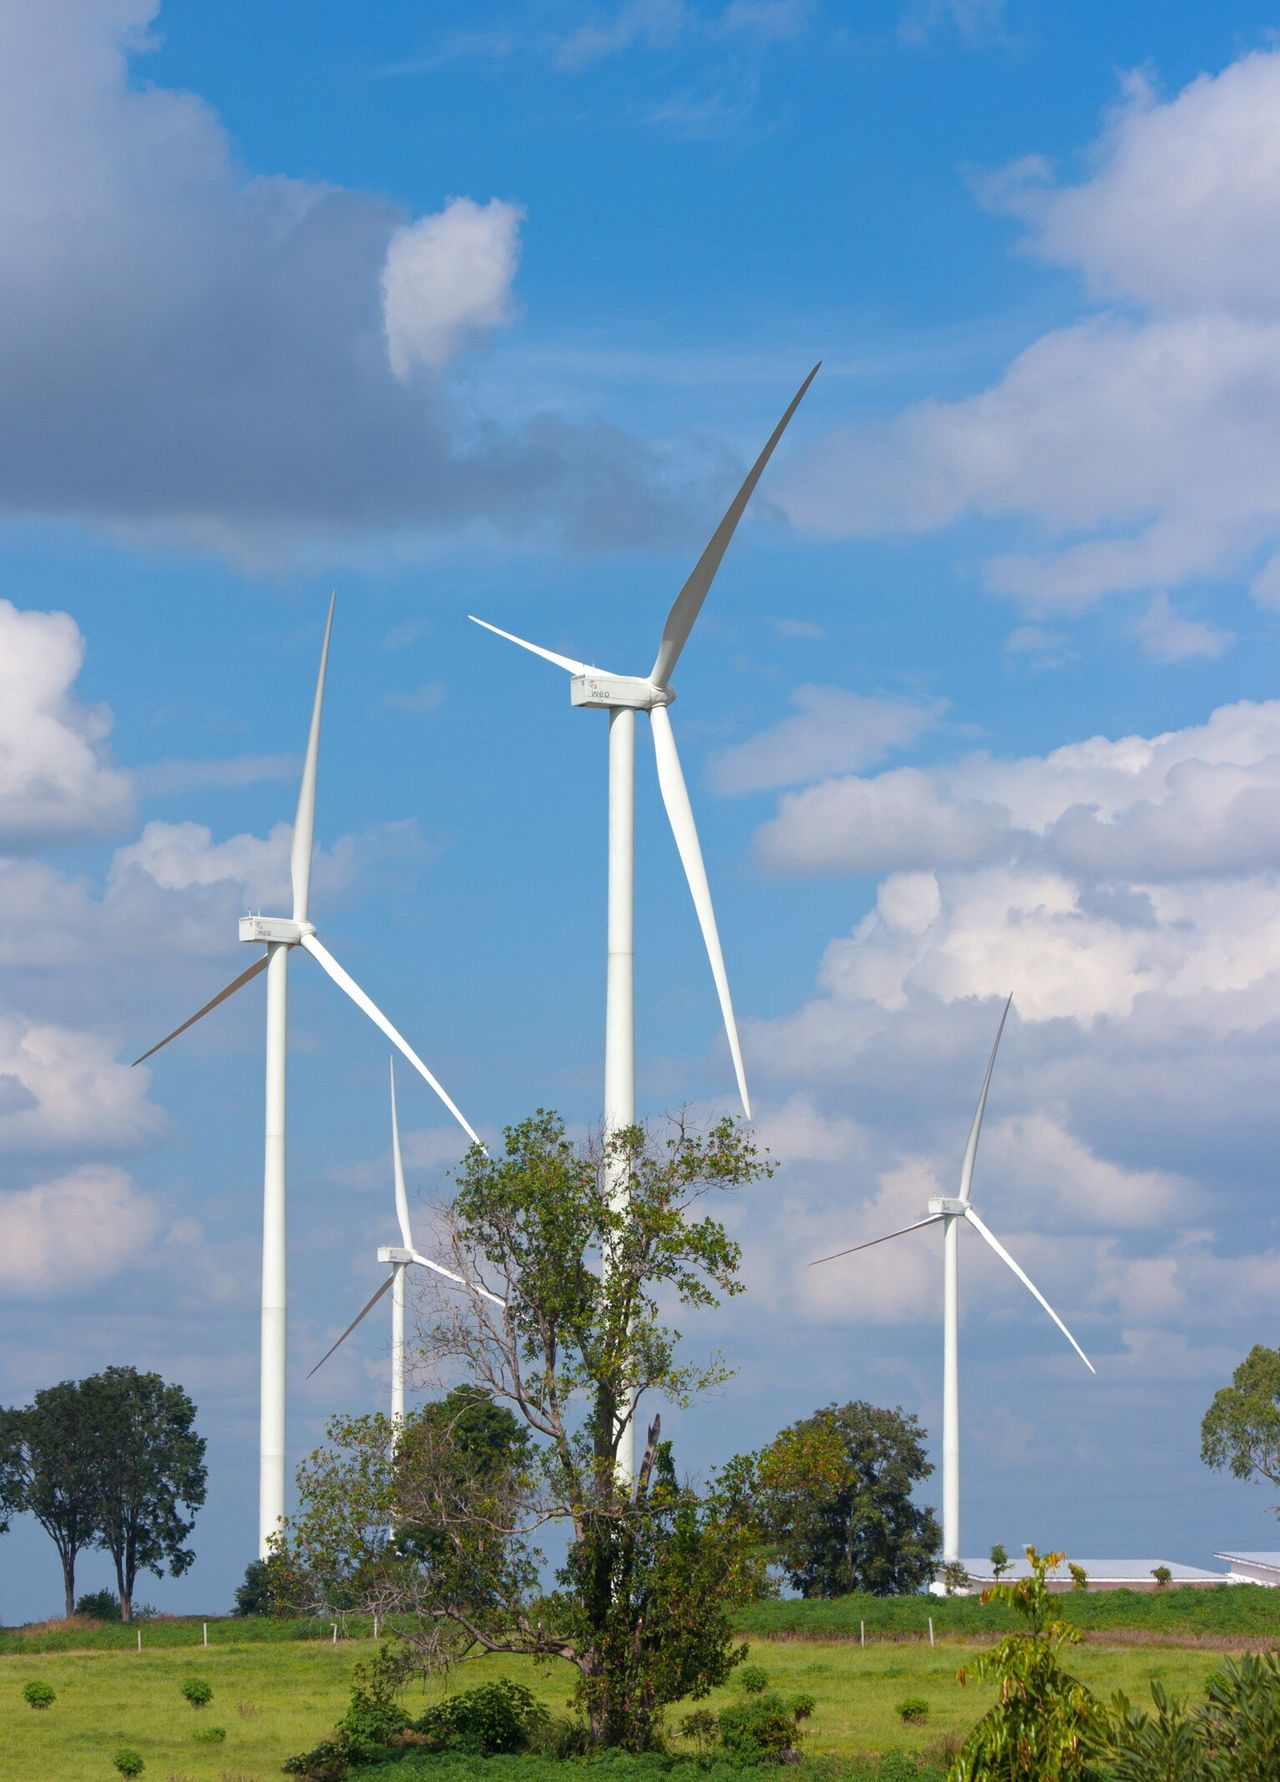 Wind Turbine Environmental Conservation Alternative Energy Wind Power Fuel And Power Generation Renewable Energy Windmill Electricity  Rural Scene Environmental Issues Industrial Windmill Sky No People Technology Nature Cloud - Sky Turbine Field Built Structure Sustainable Resources Ecology Eco Industry Industrial Wind